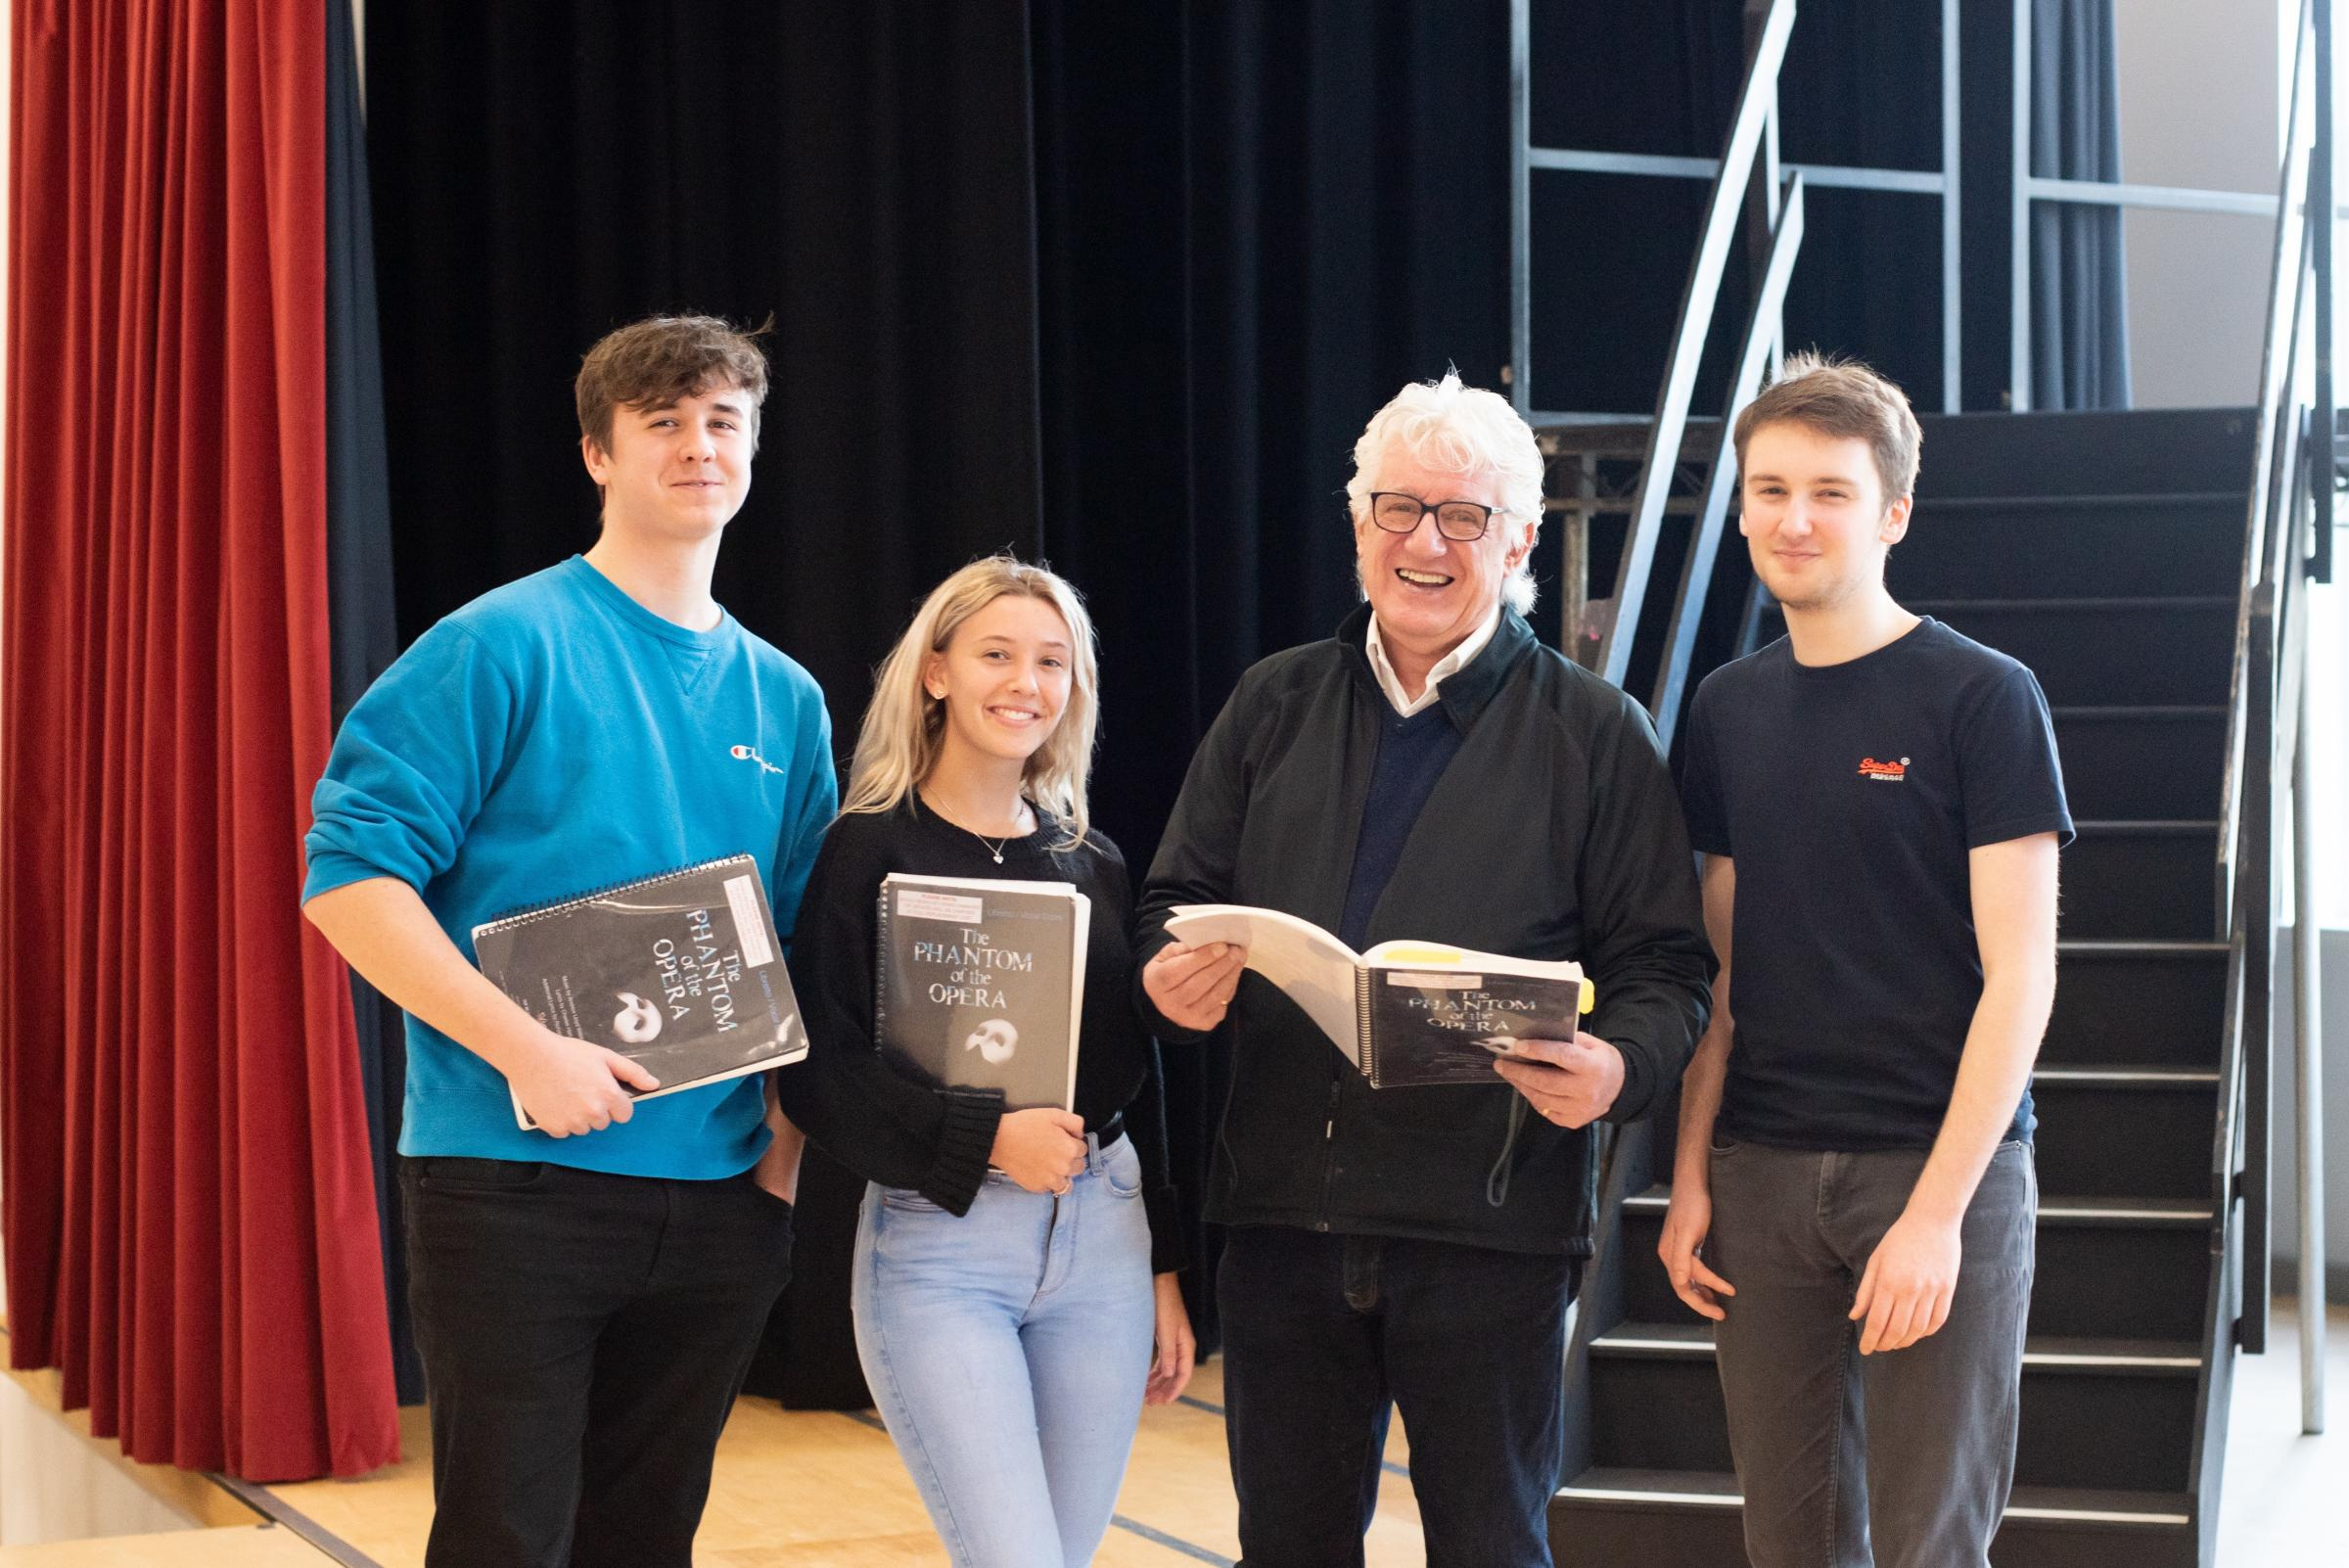 City school pupils receive acting masterclass from West End star